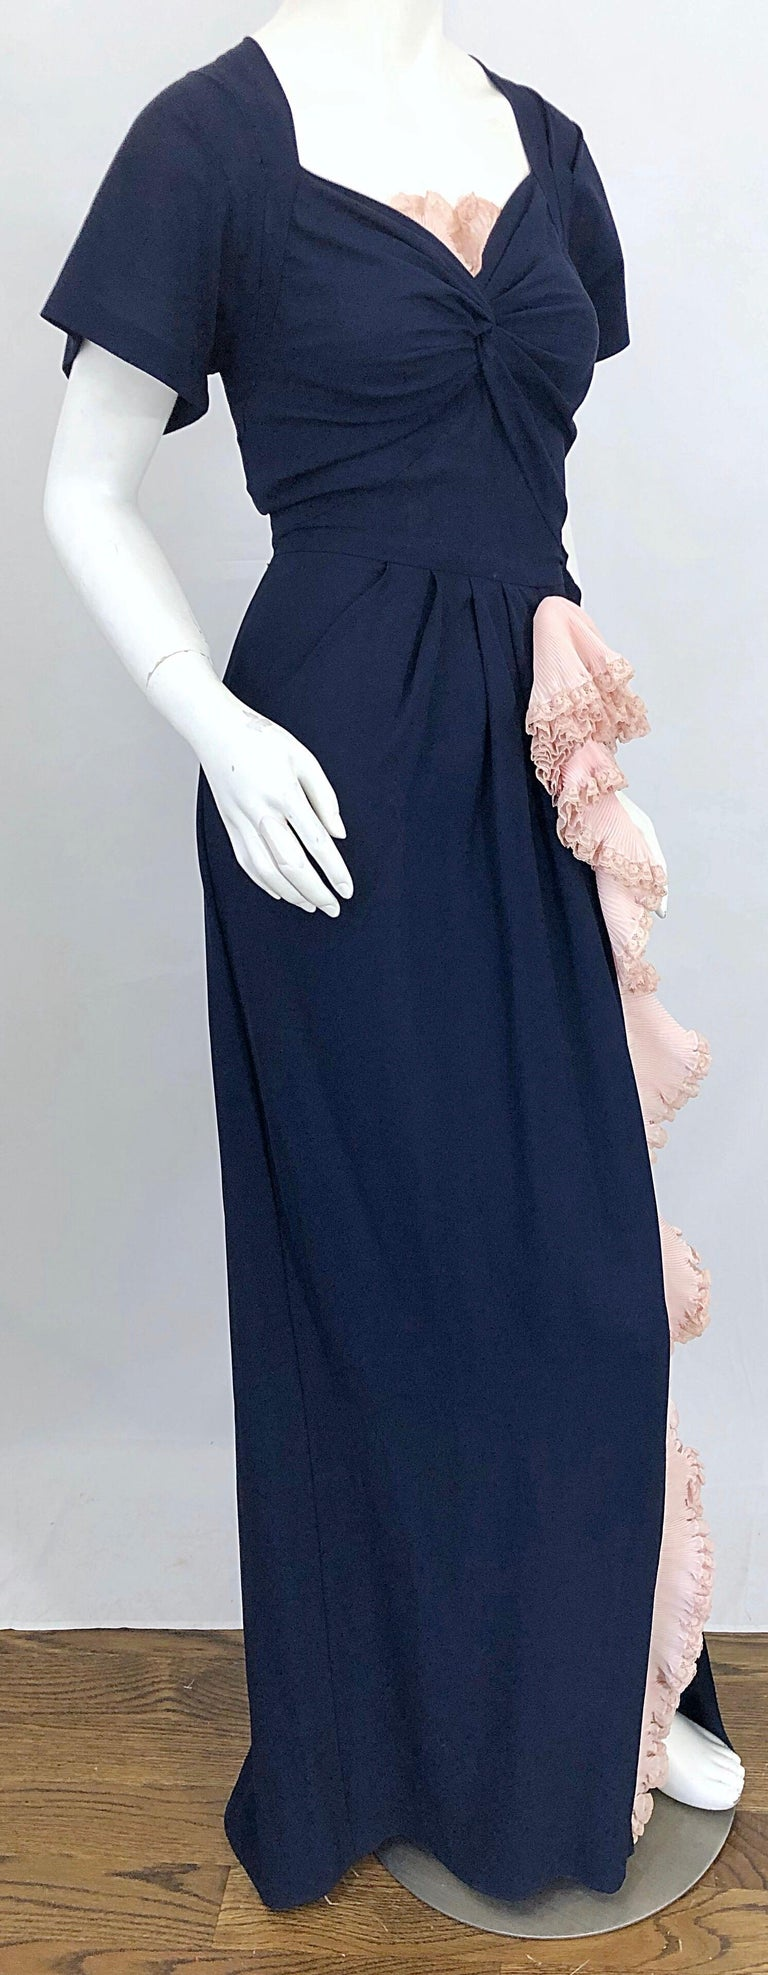 1940s Demi Couture Navy Blue + Pale Pink Short Sleeve 40s Vintage Gown / Dress For Sale 2